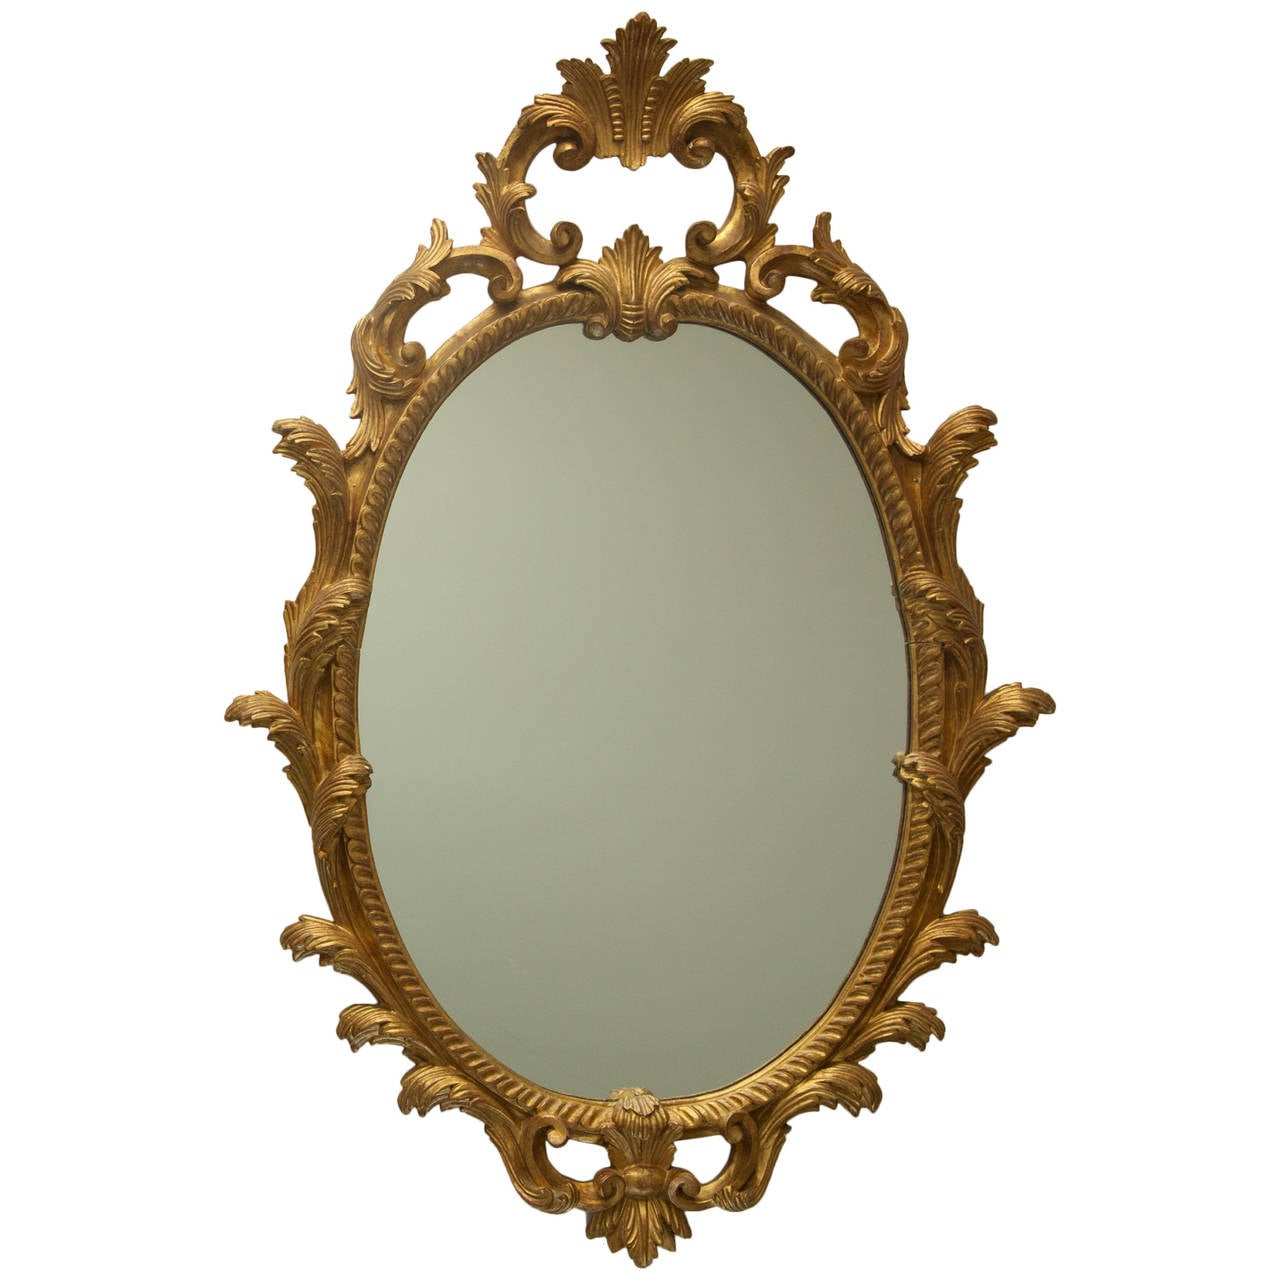 Italian hand painted carved wooden mirror for sale at 1stdibs for Wooden mirror